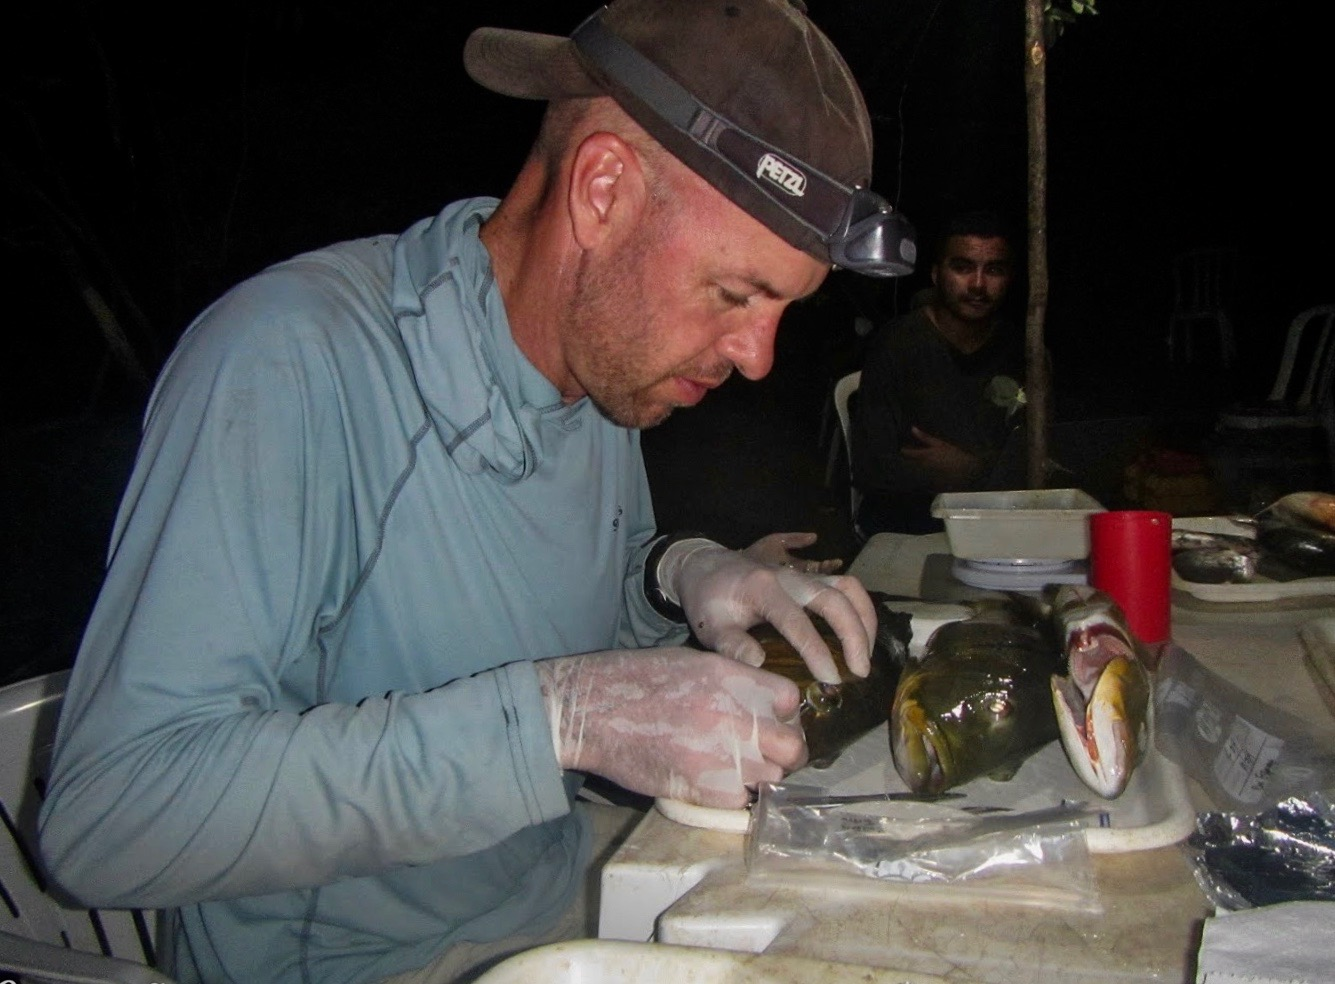 a man in a baseball cap and wearing gloves dissects a fish on a lab bench outdoors